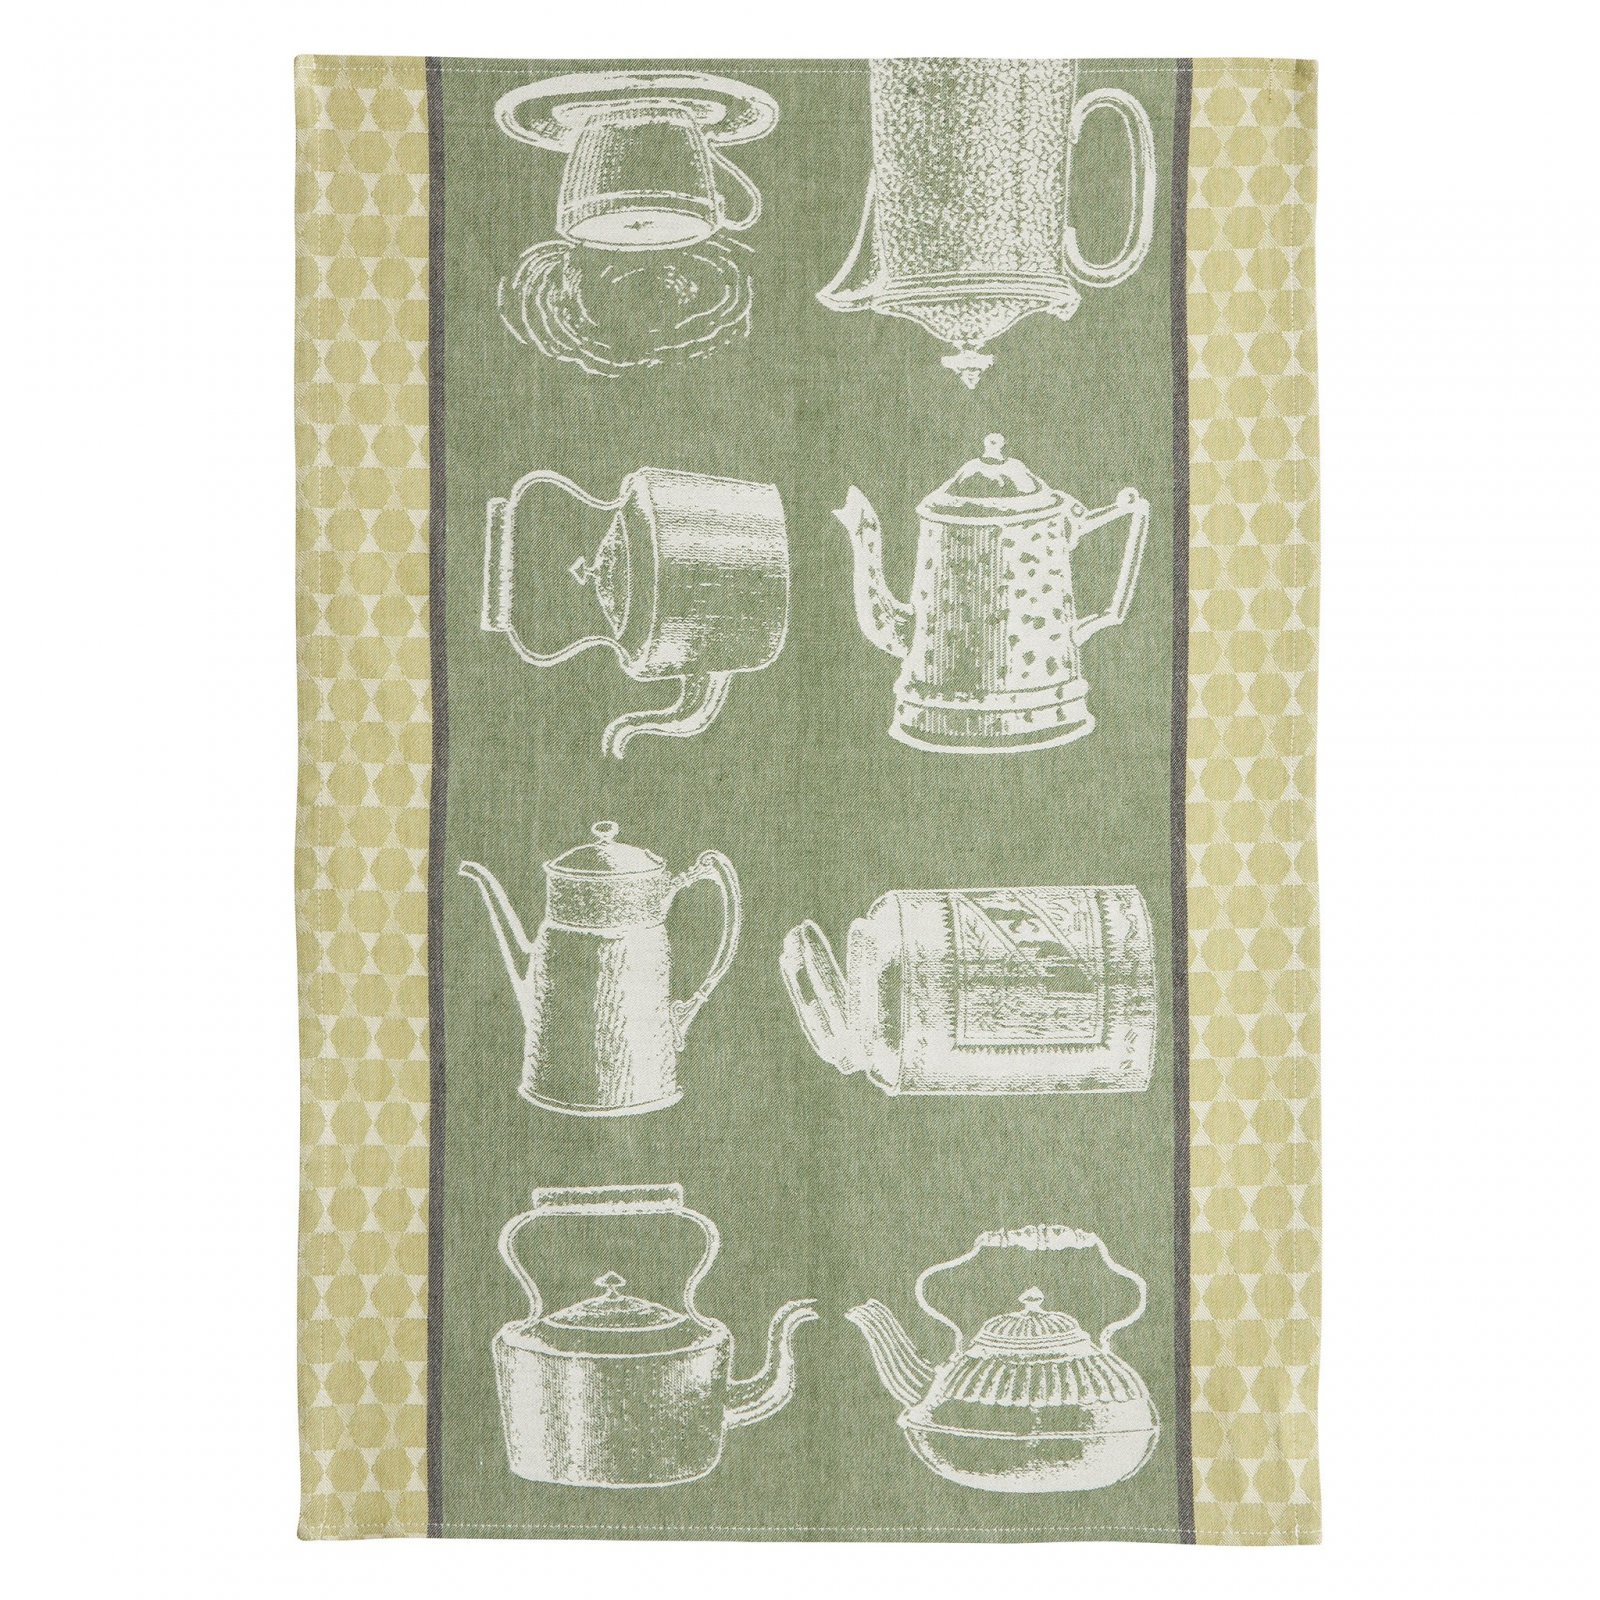 Coucke Tea Pots tea towel #1